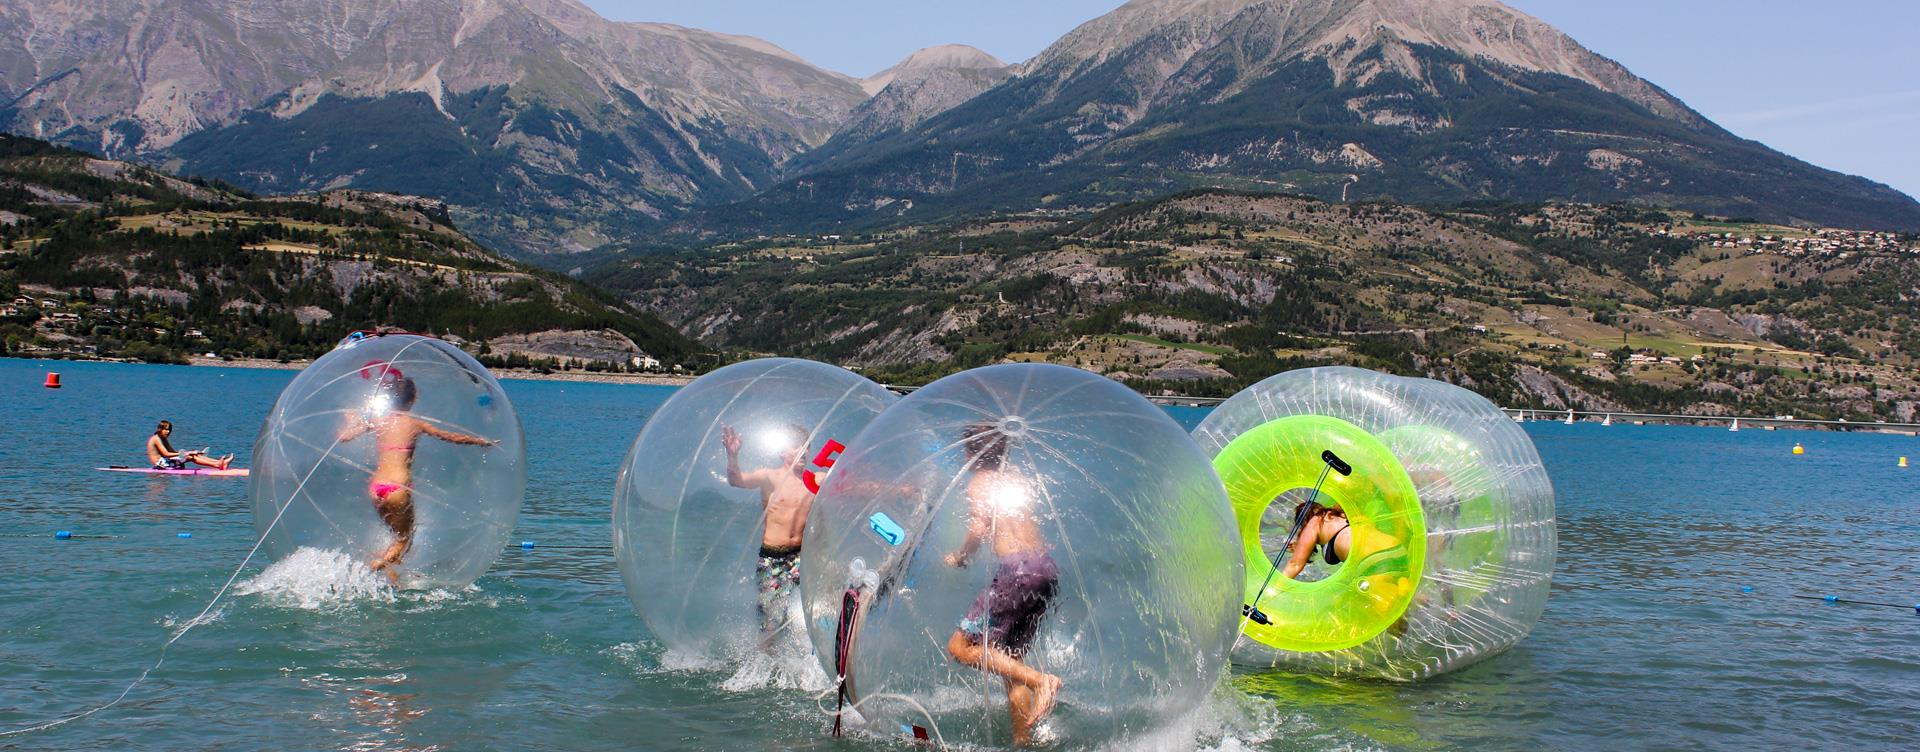 Water games on the Serre-Ponçon Lake: Camping le Roustou in the Hautes-Alpes